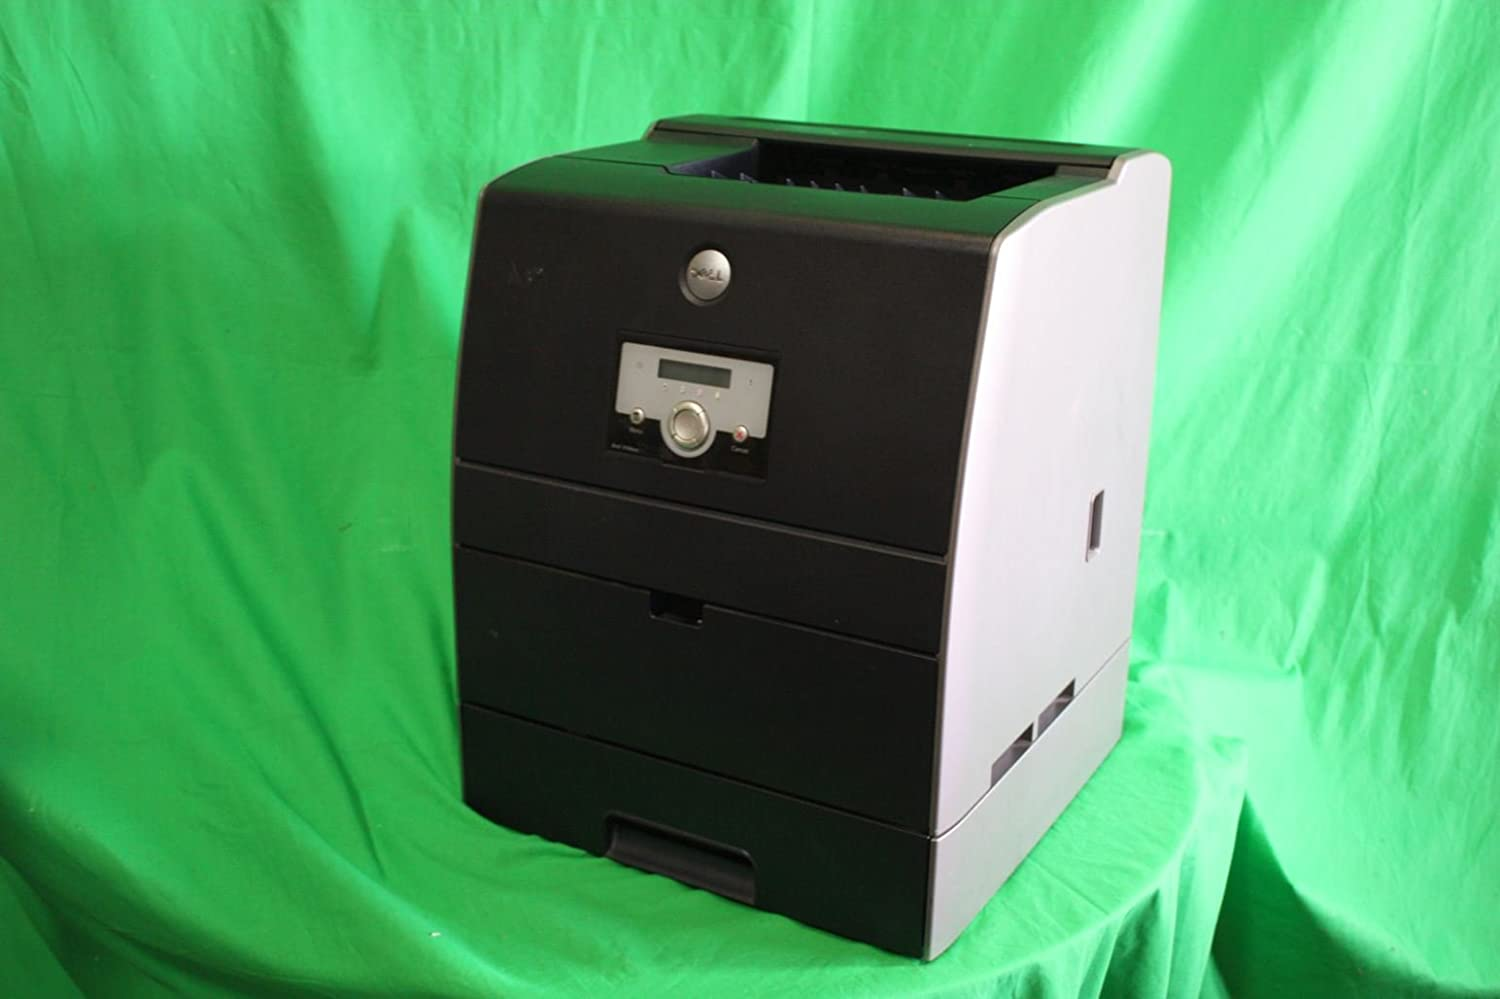 DELL 3100CN COLOR LASER PRINTER DRIVERS FOR WINDOWS